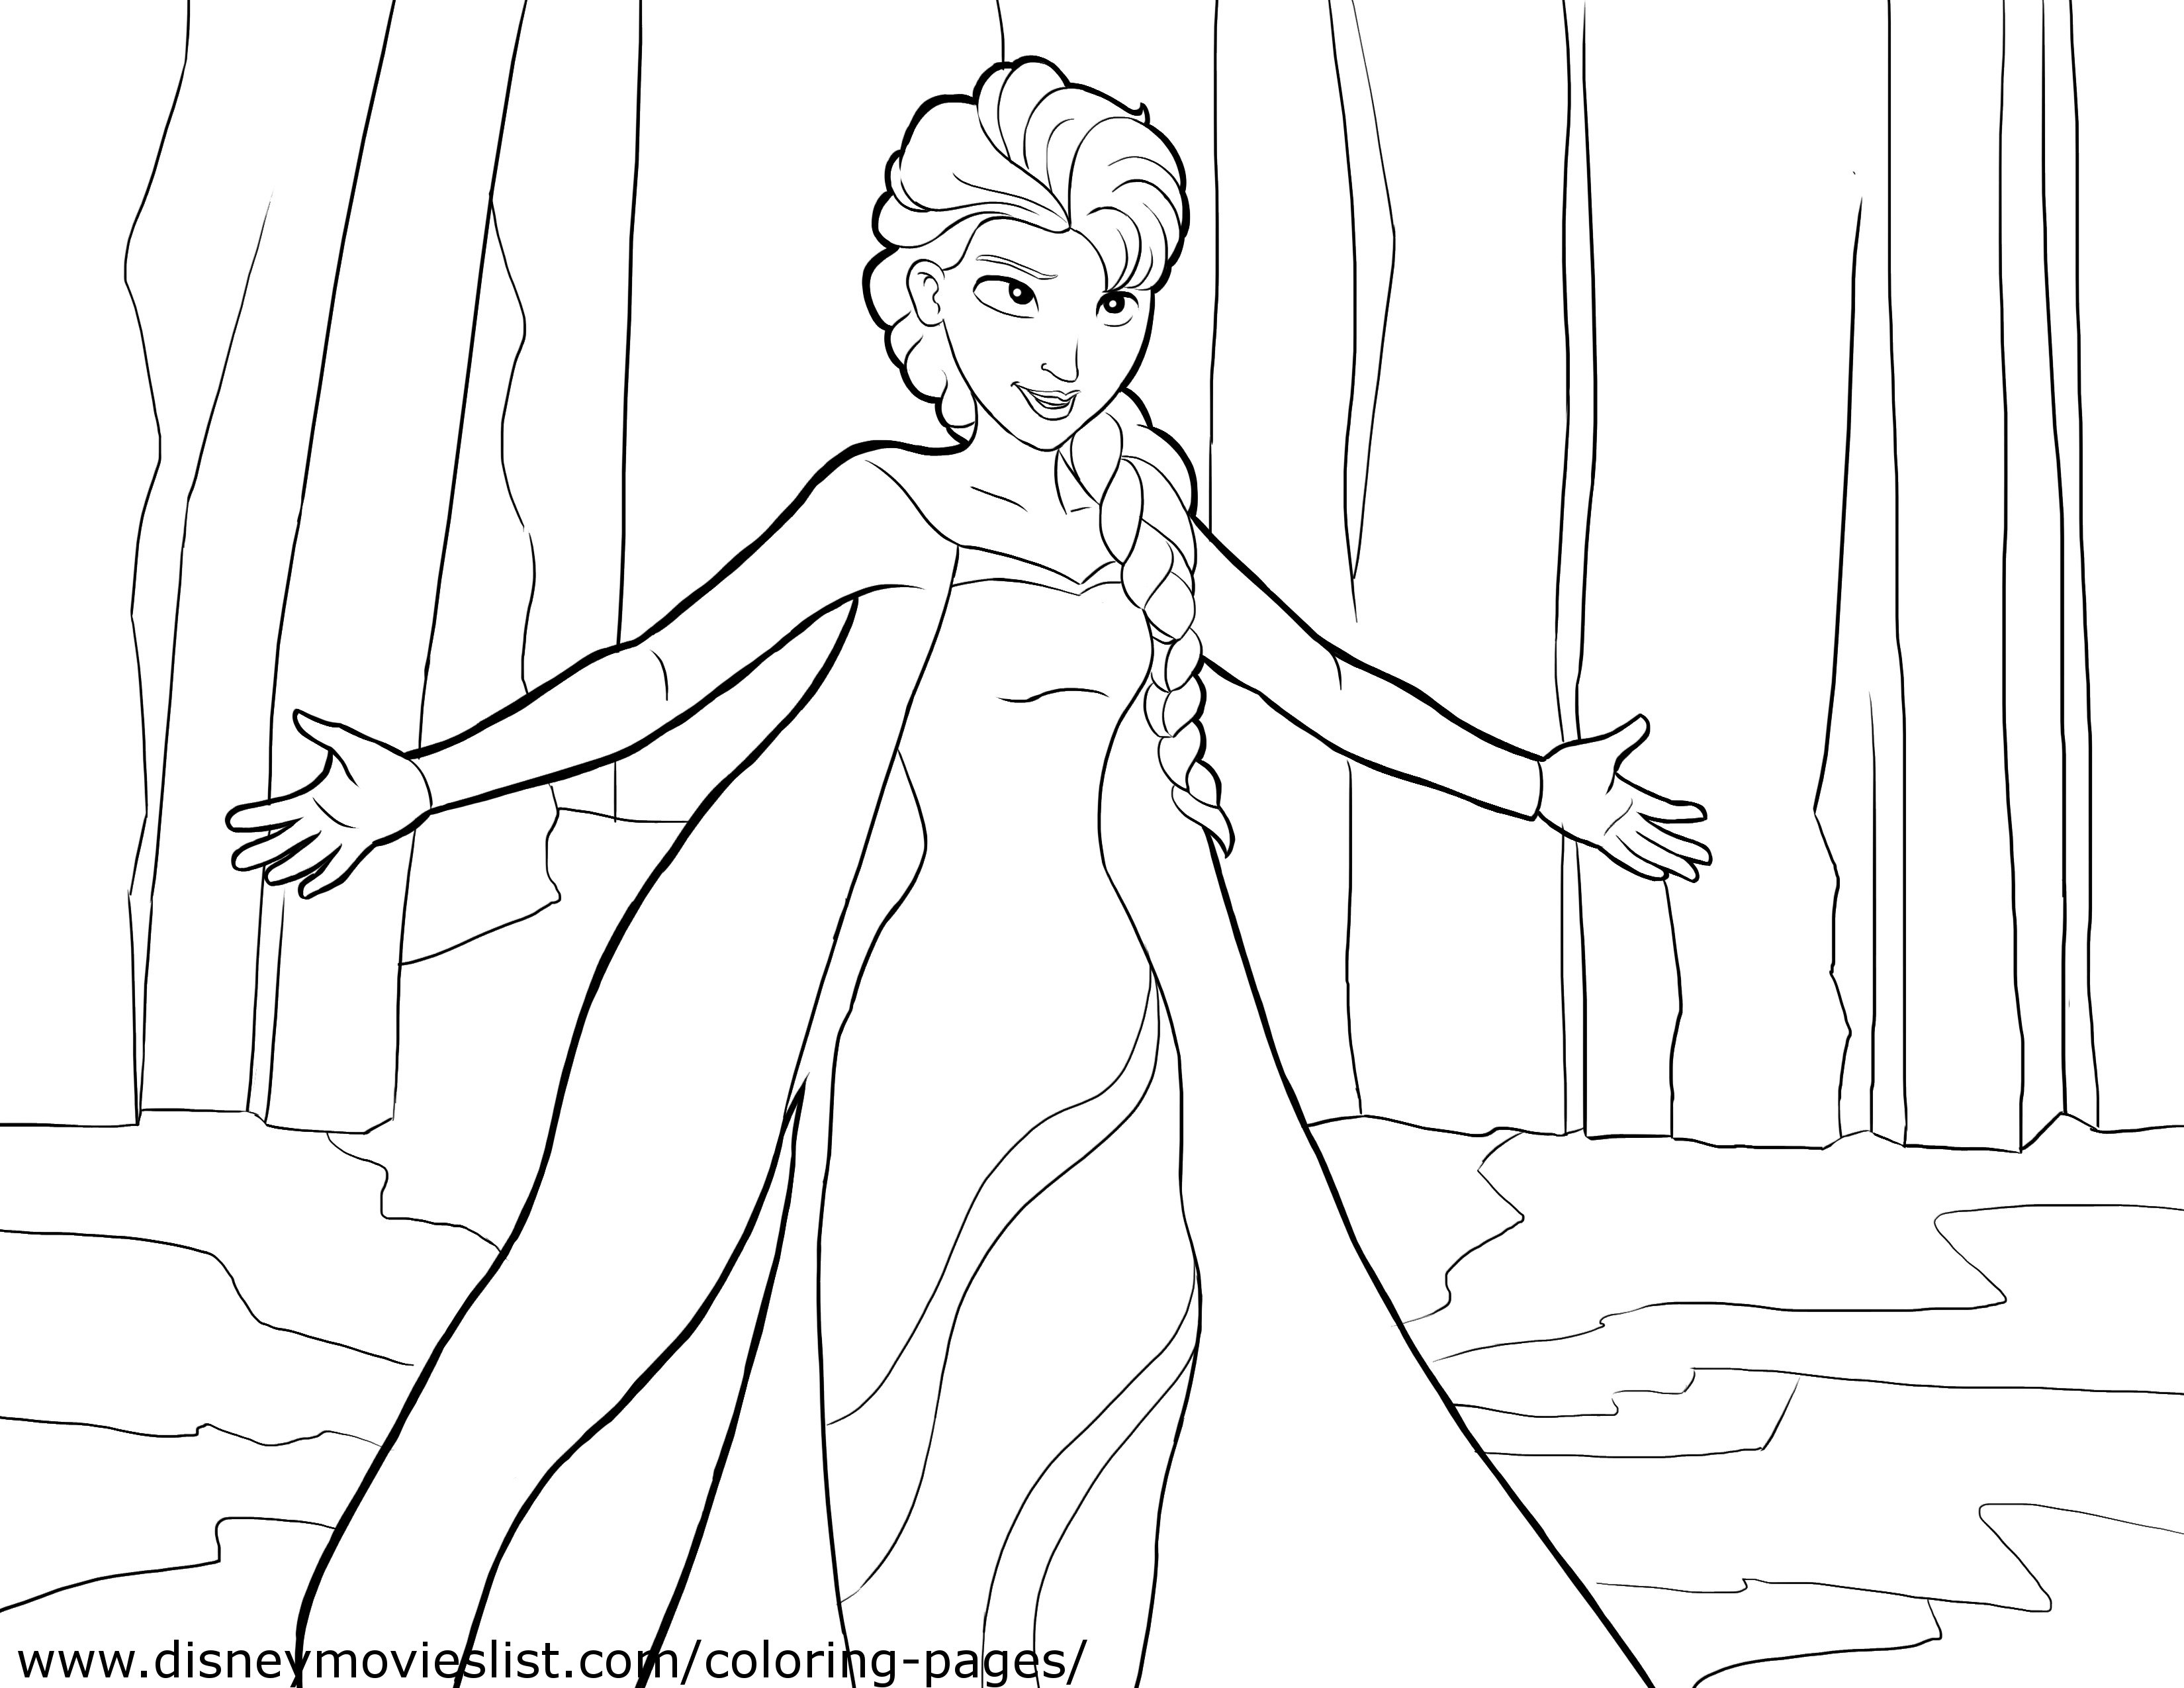 7 Images of Frozen Coloring Printable PDF